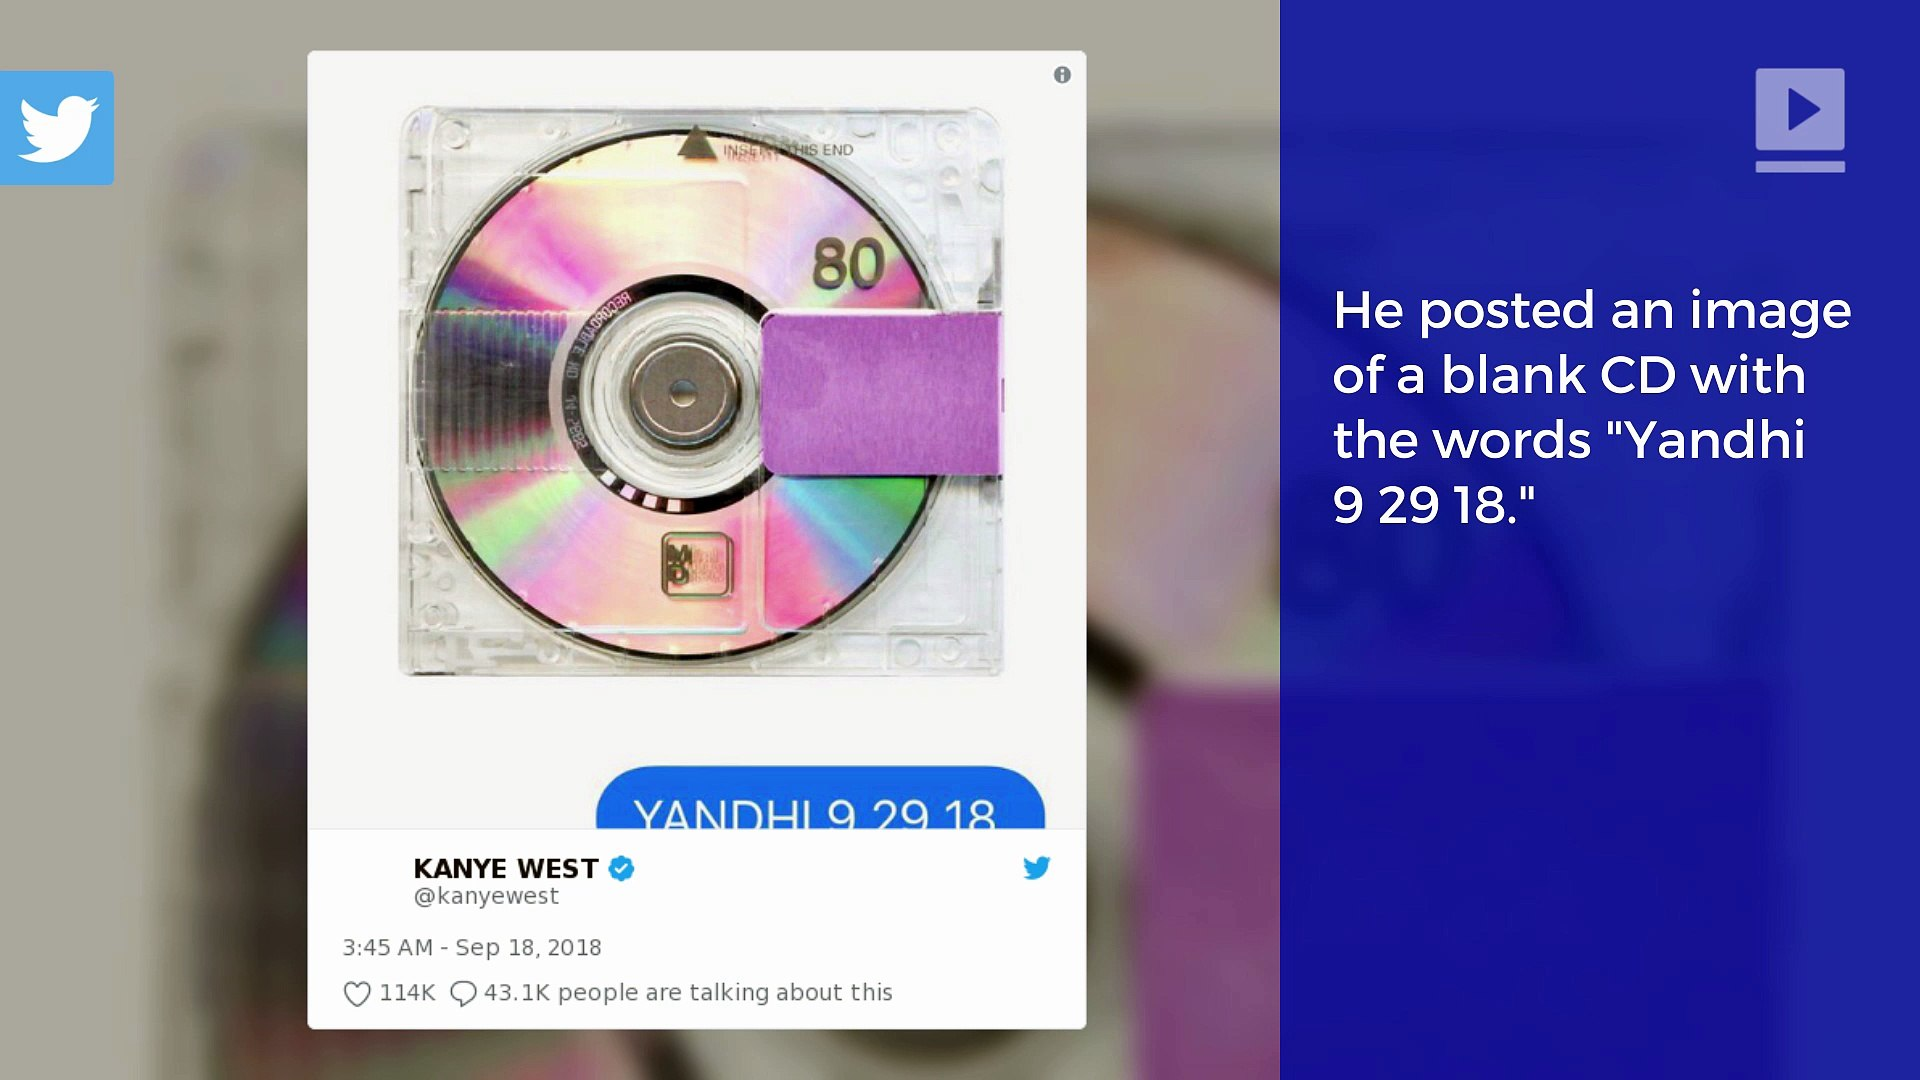 Kanye West Hints at Release Date for 'Yandhi'